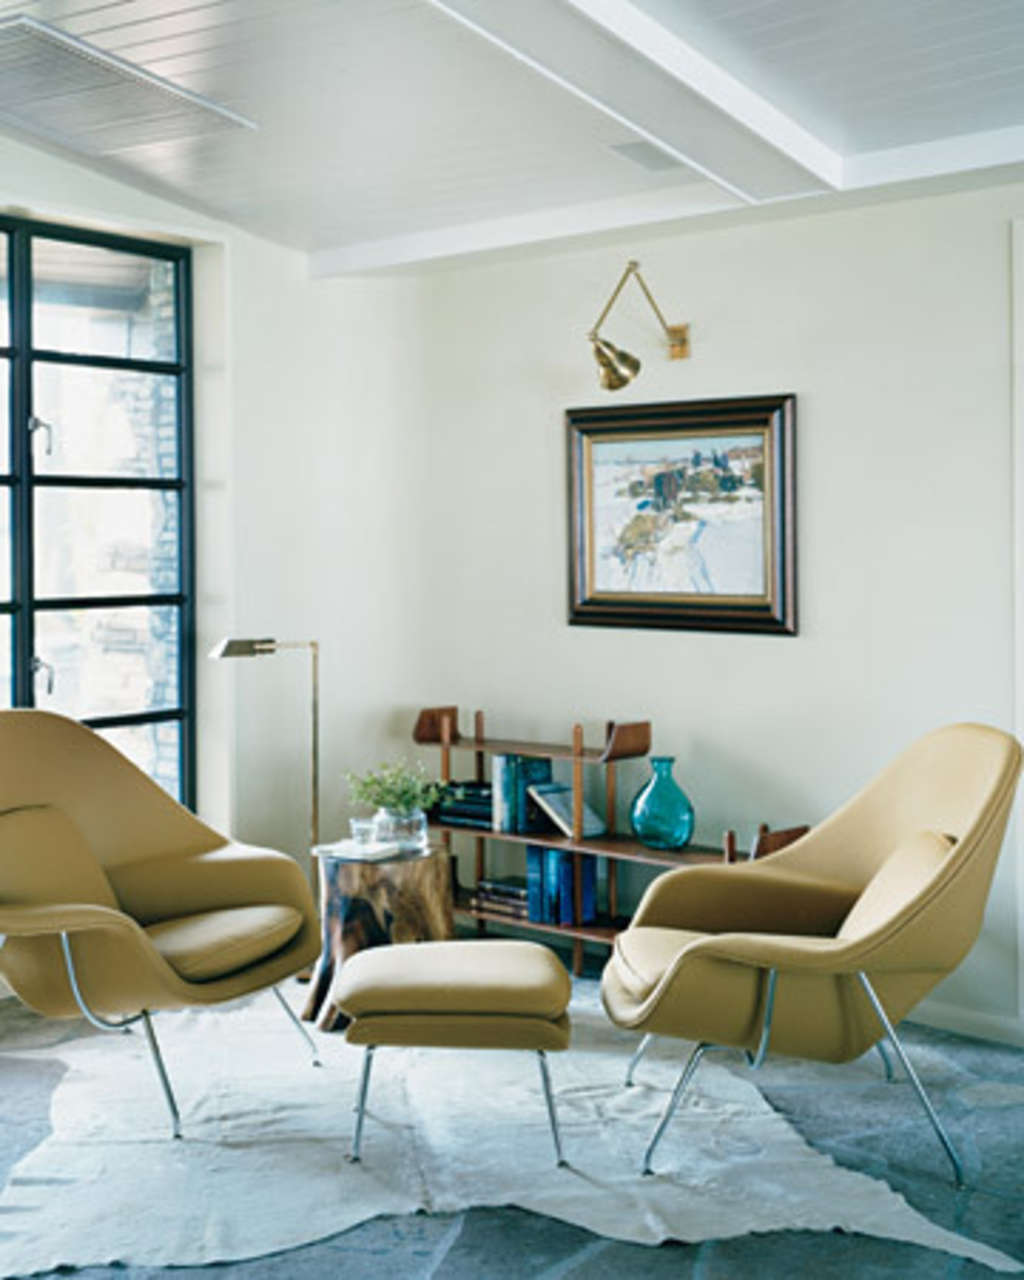 Apartment Move: 5 Small Space Tips That Actually Work